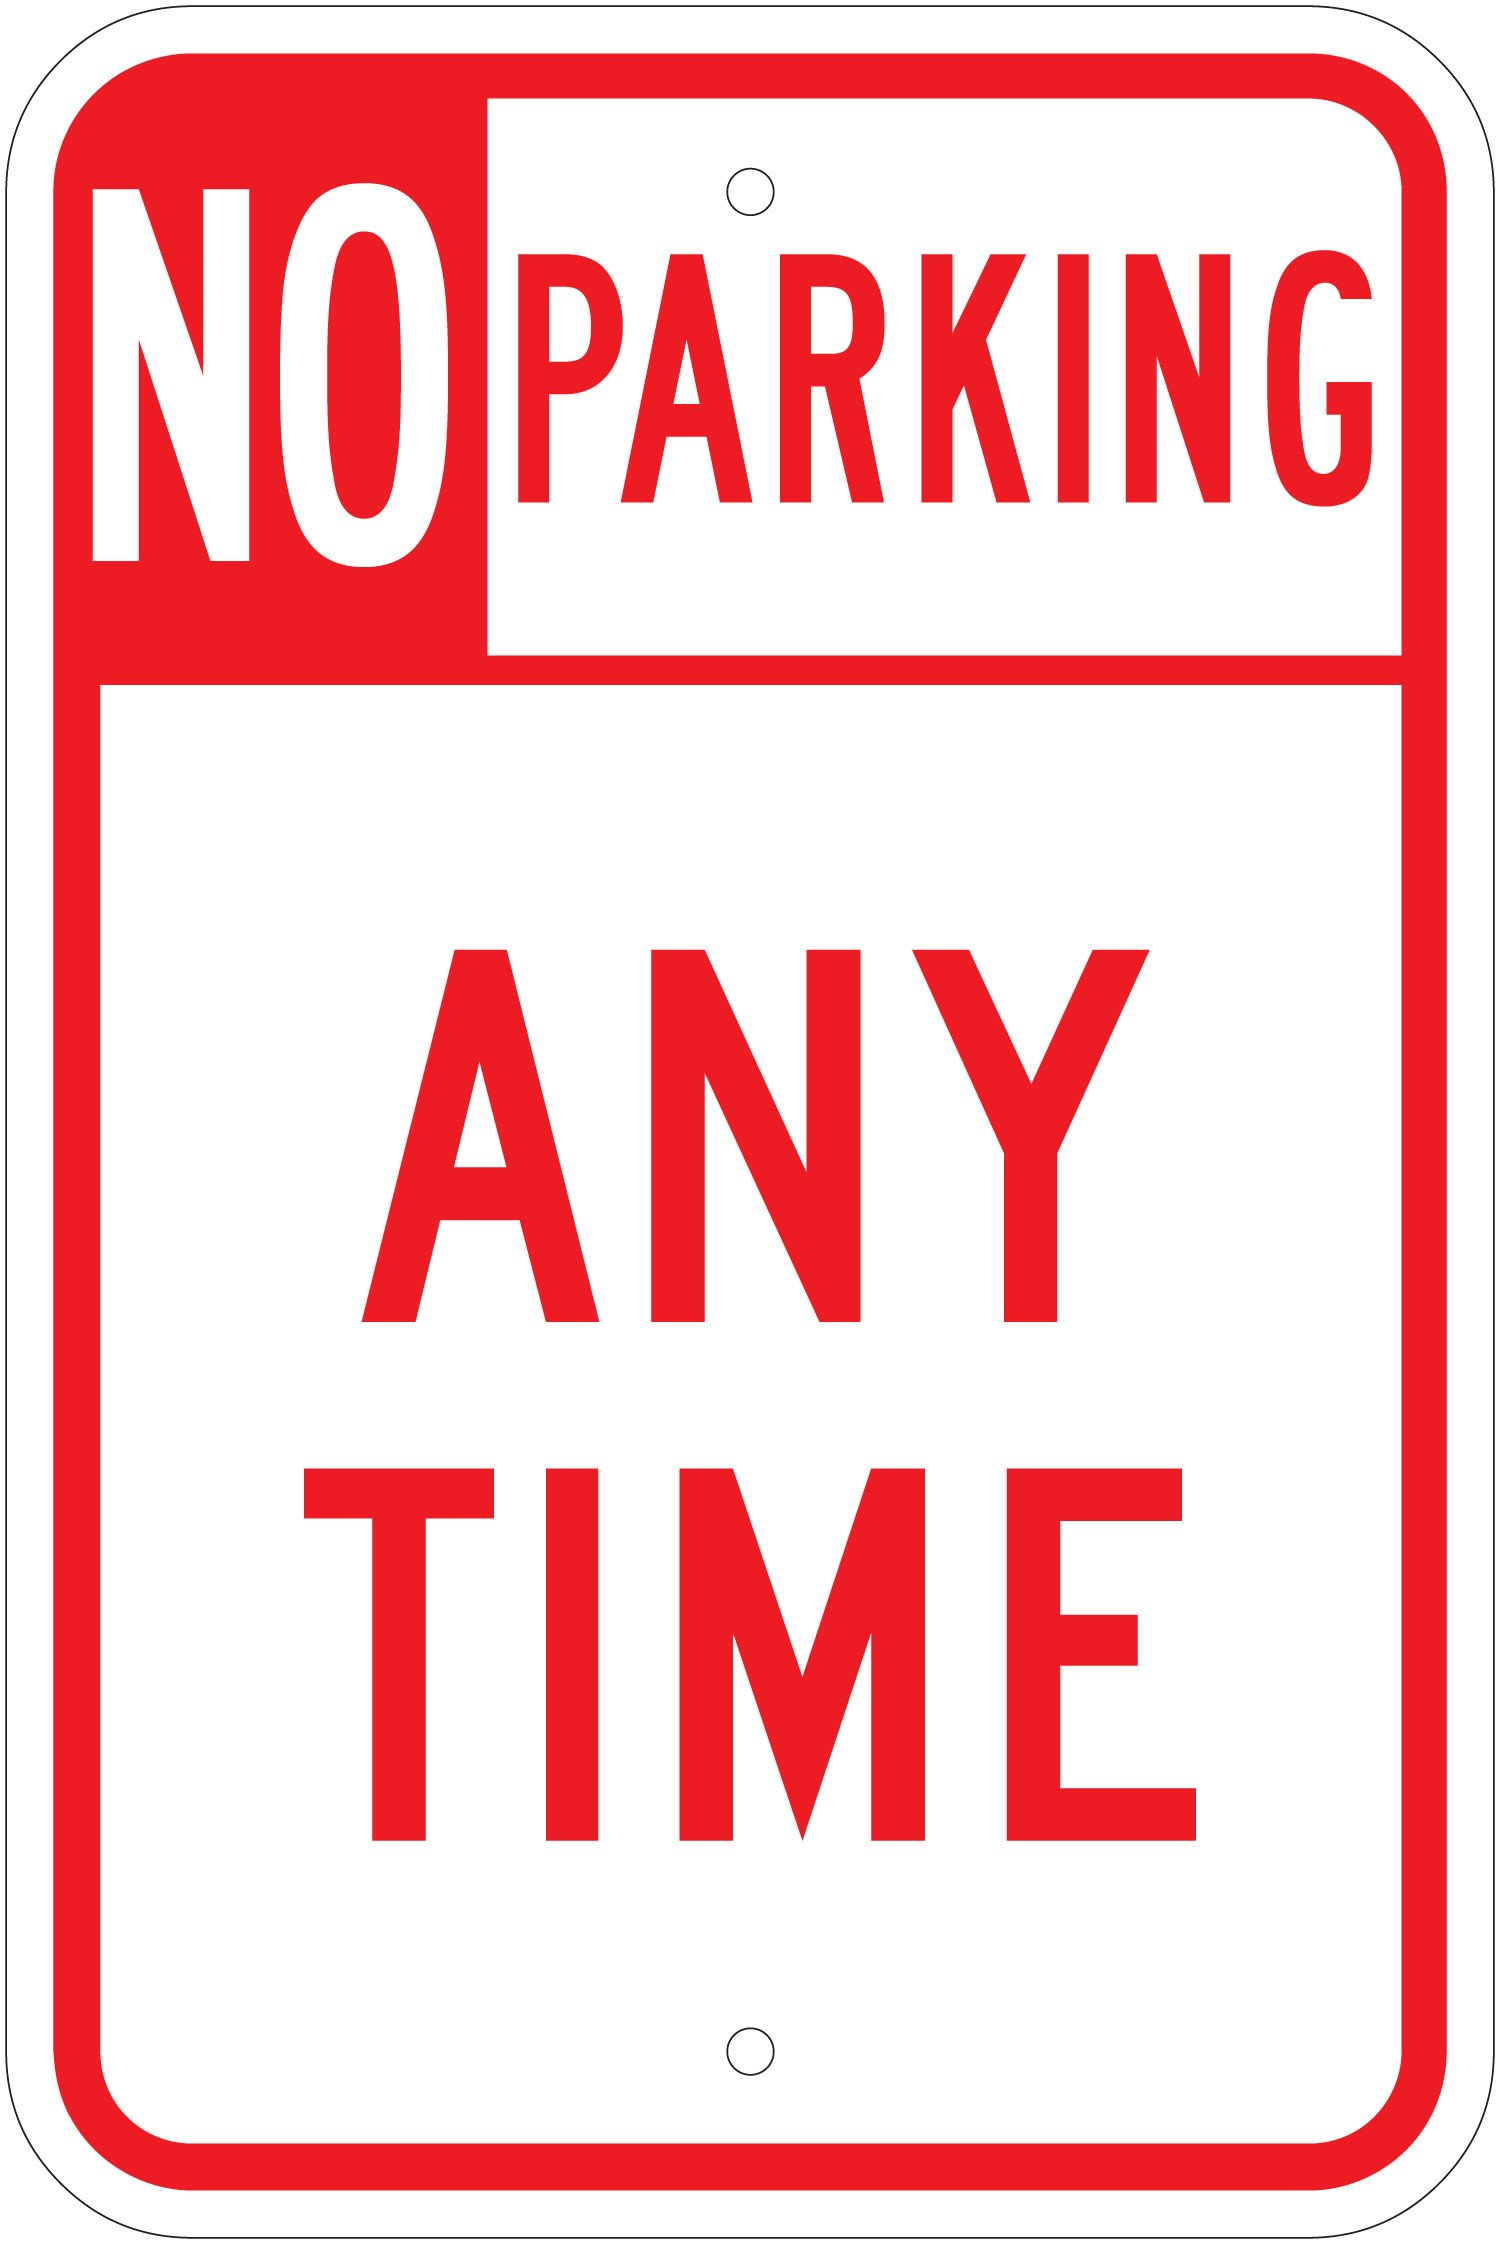 No Parking Signs Template Free Printable No Parking Signs Download Free Clip Art